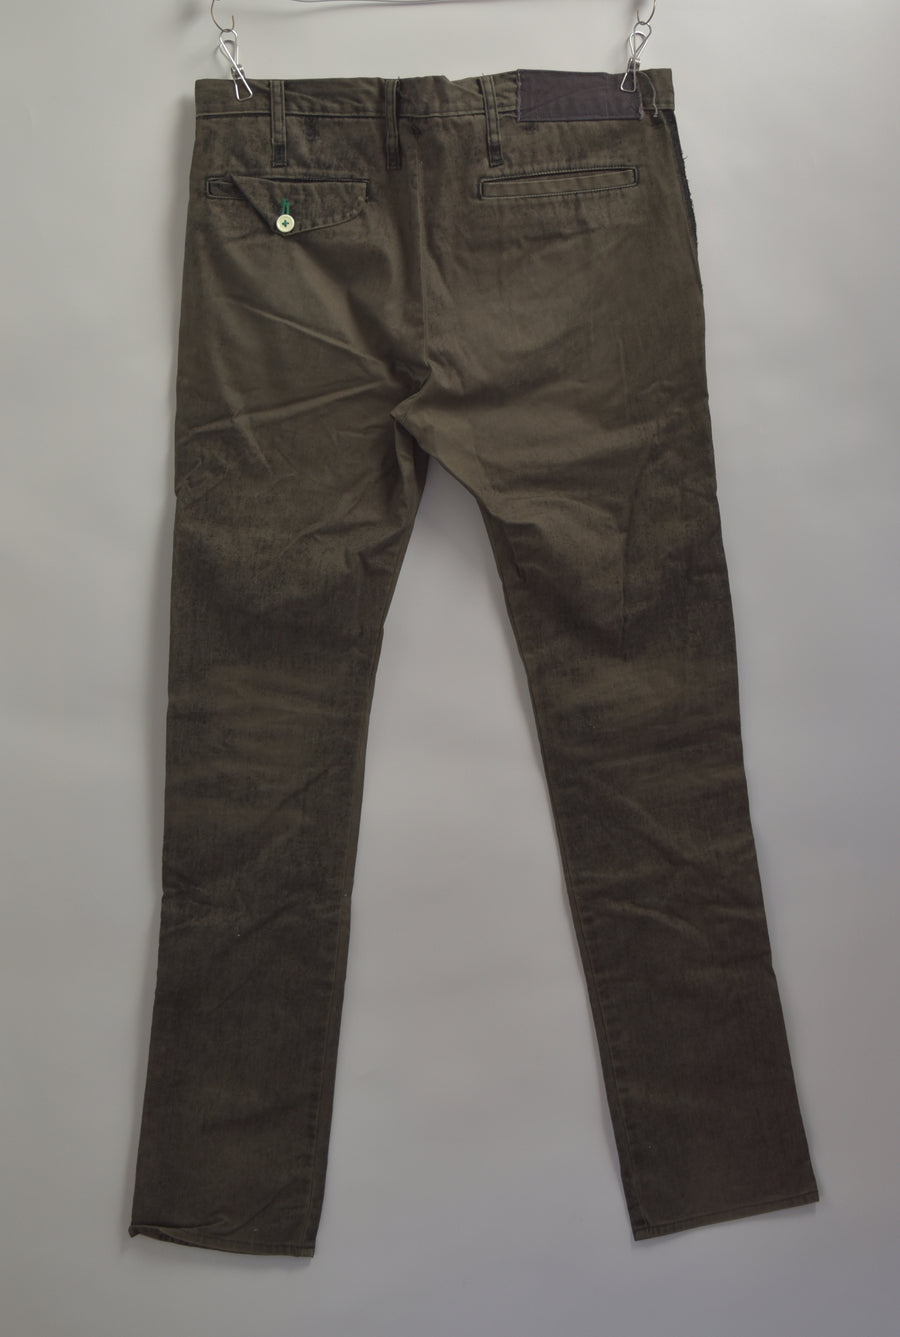 UNDERCOVER / Black Shiny Slacks Pants / 7376 - 0412 80.5